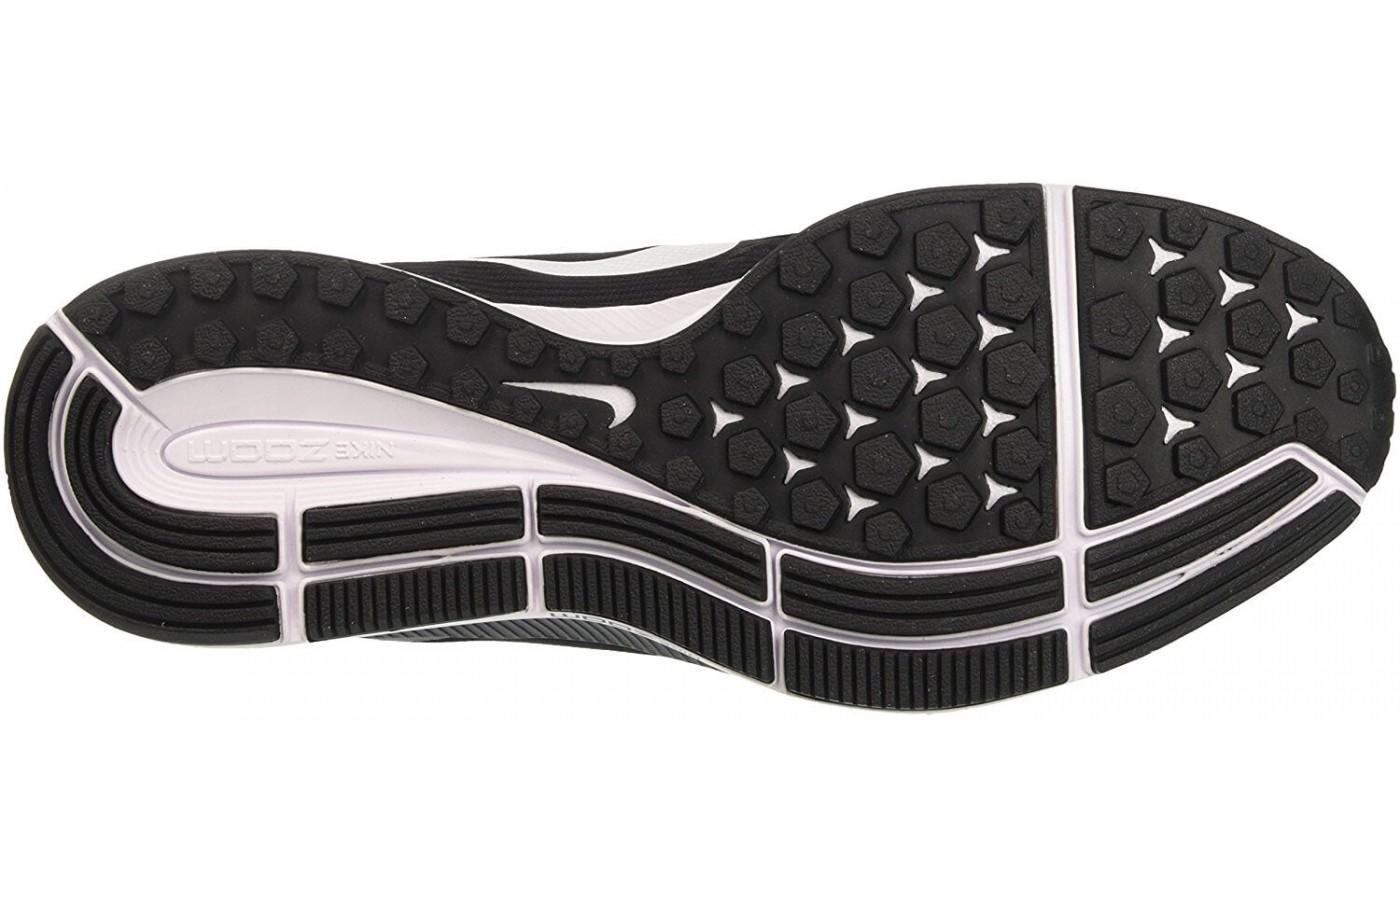 518b5c38e1d93 ... the outsole of the Nike Air Zoom Pegasus 34 features excellent tread on  the medial and ...